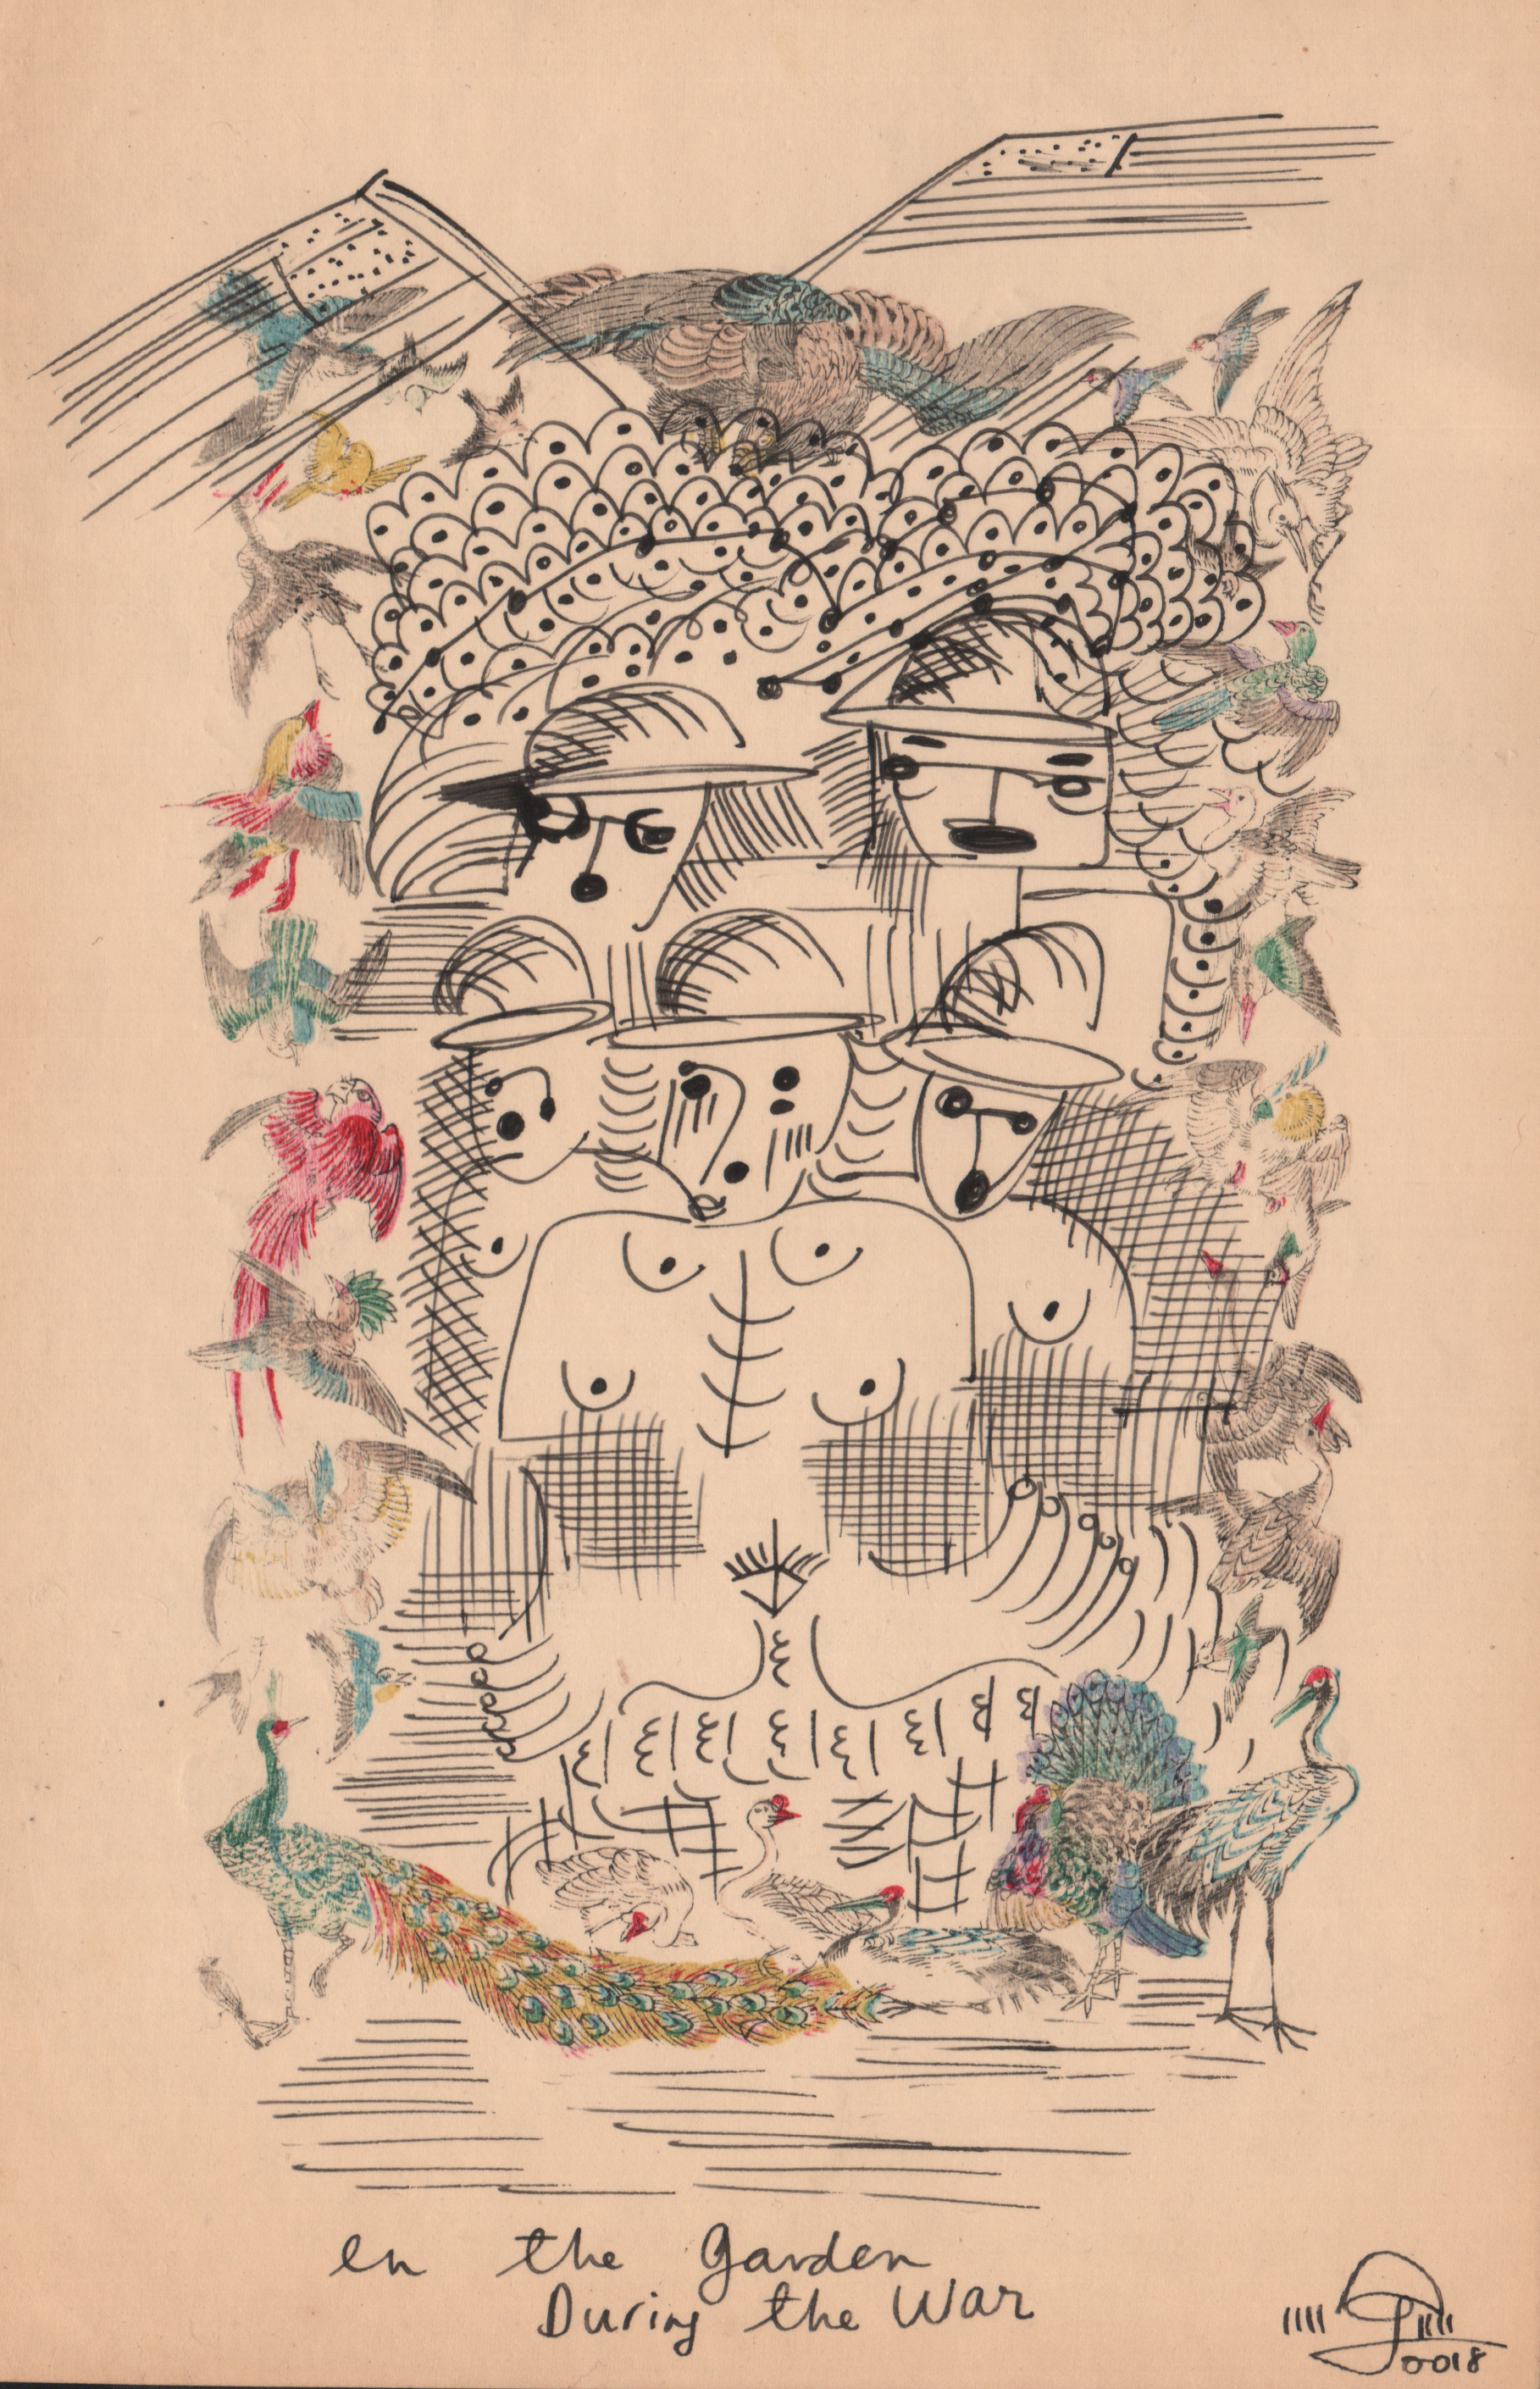 Untitled #3, In The Garden During The War